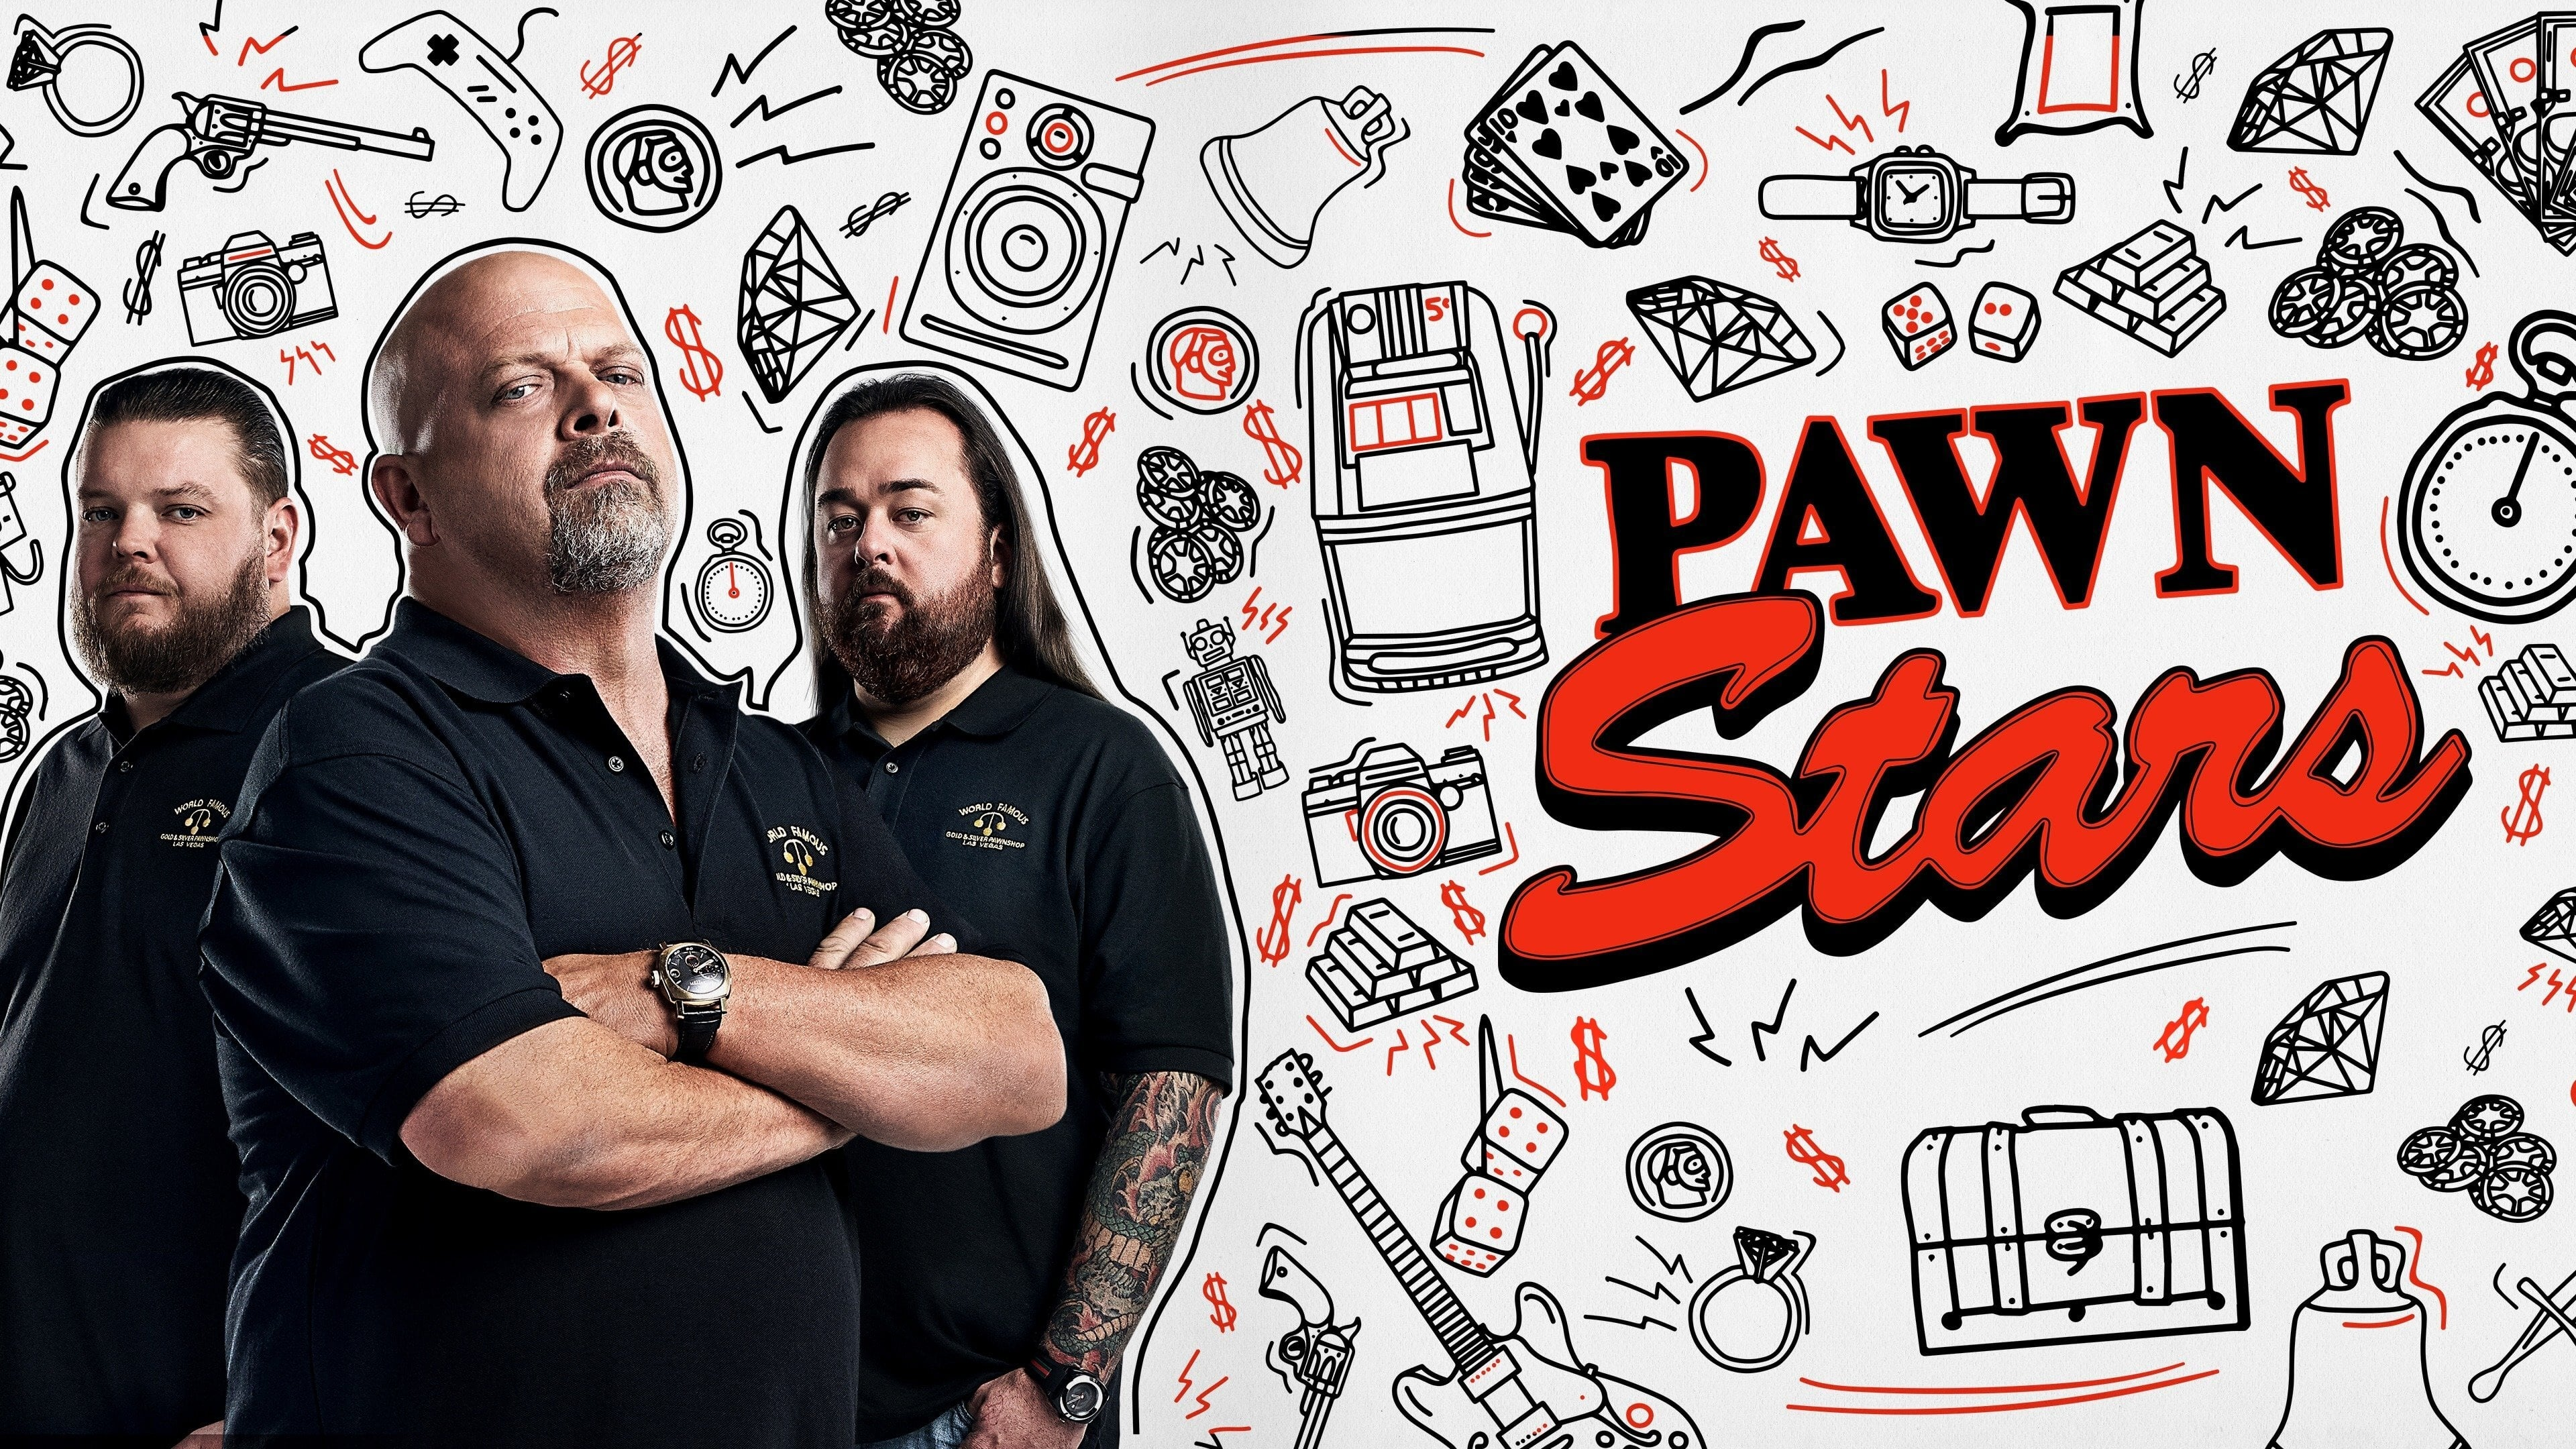 Pawn Stars - Season 5 Episode 17 : Over the Moon